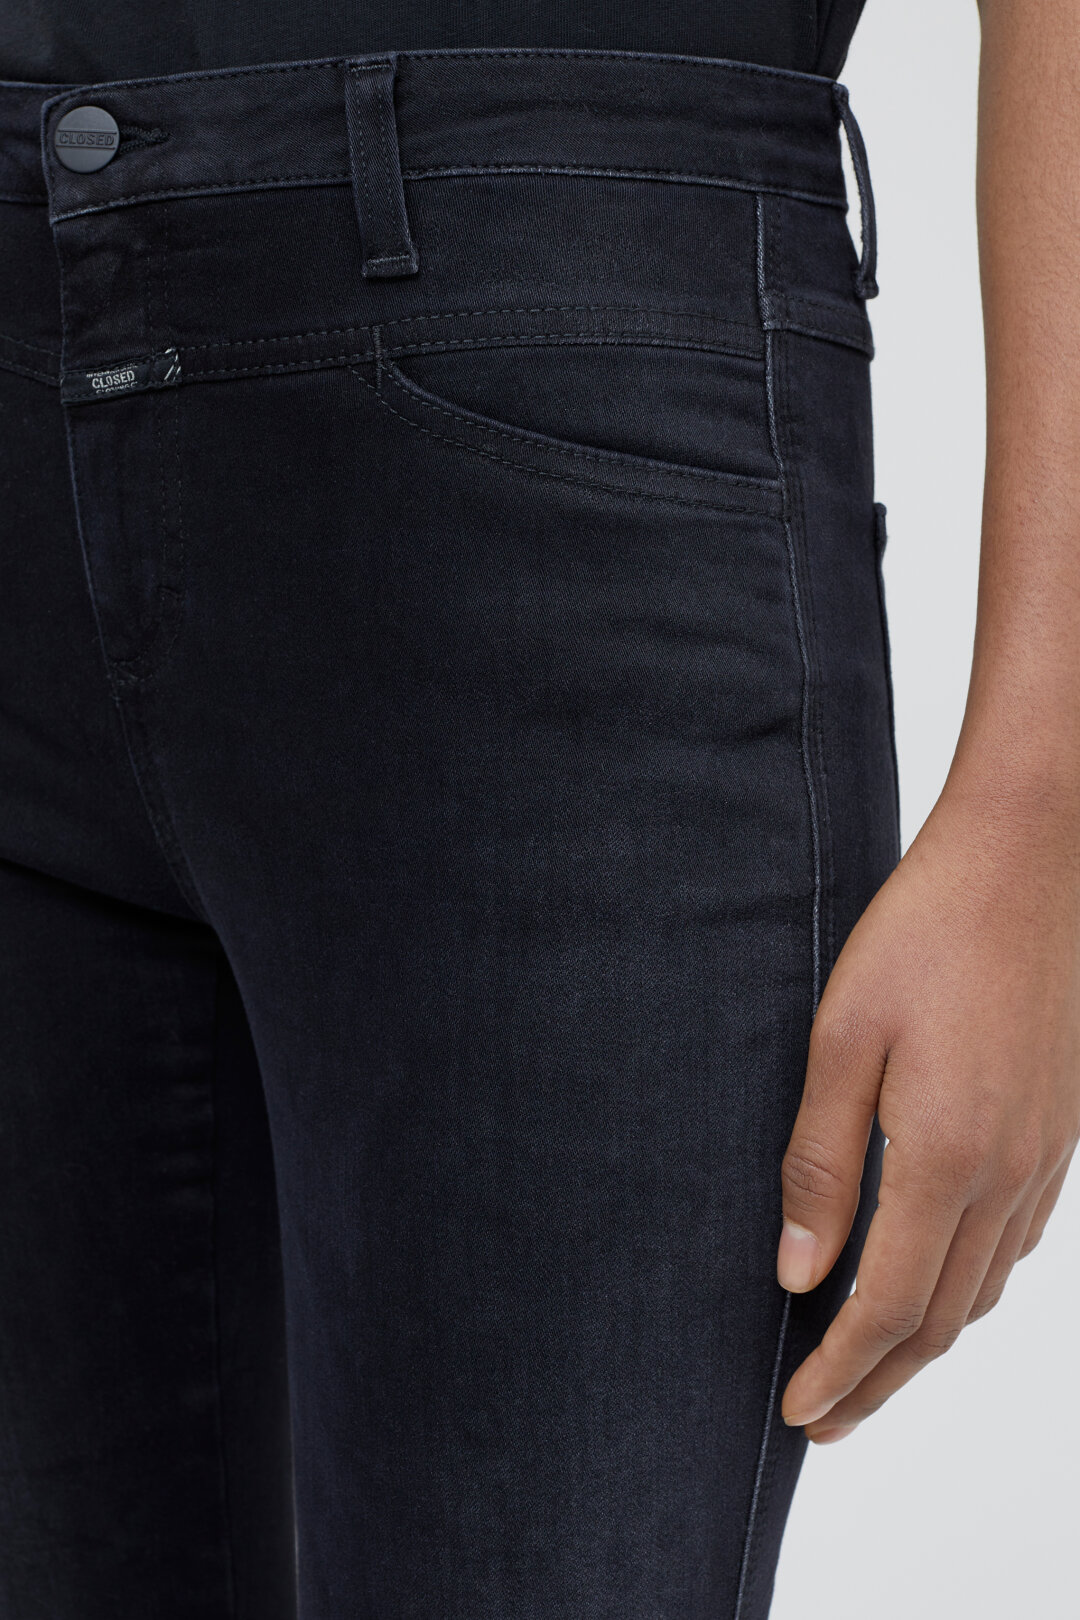 Skinny Pusher Power Stretch Black Denim